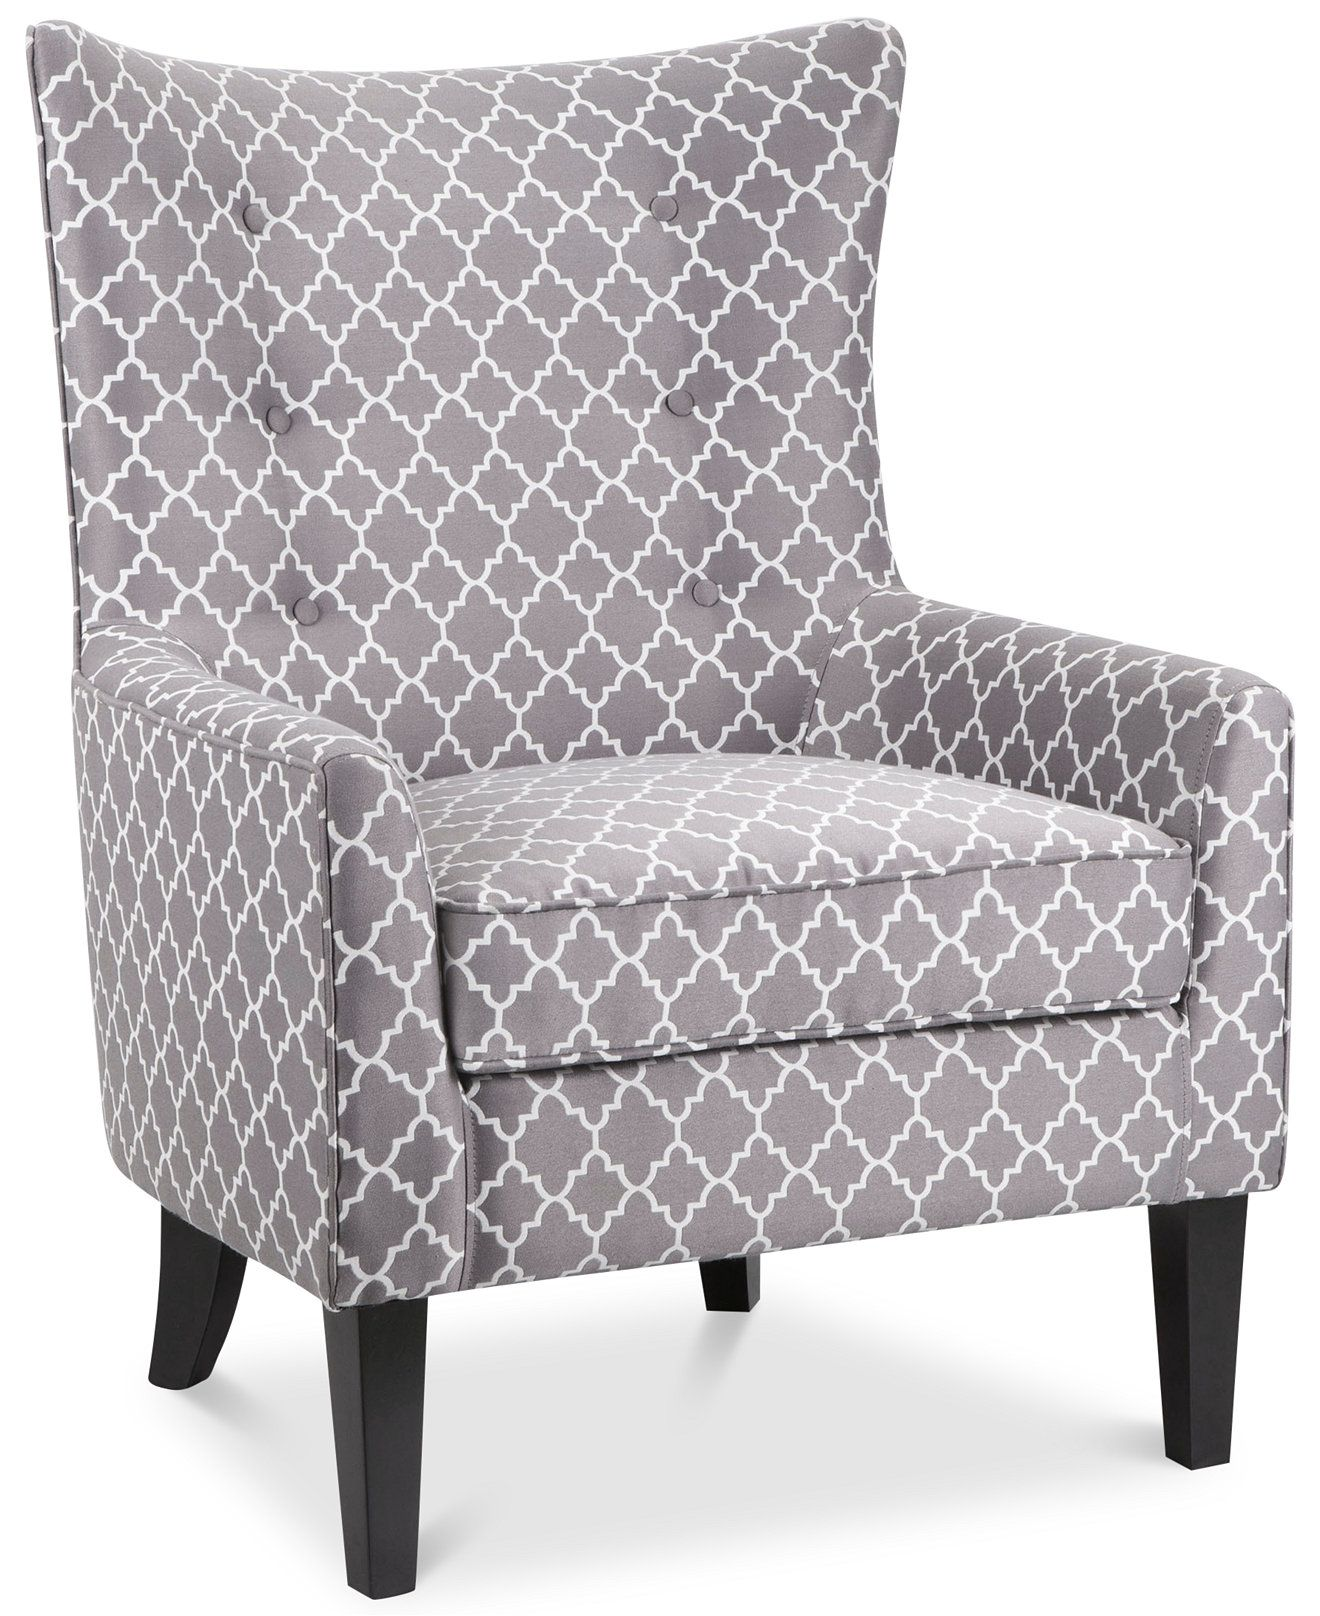 Brie Printed Fabric Accent Chair Cocinas Integrales De Madera